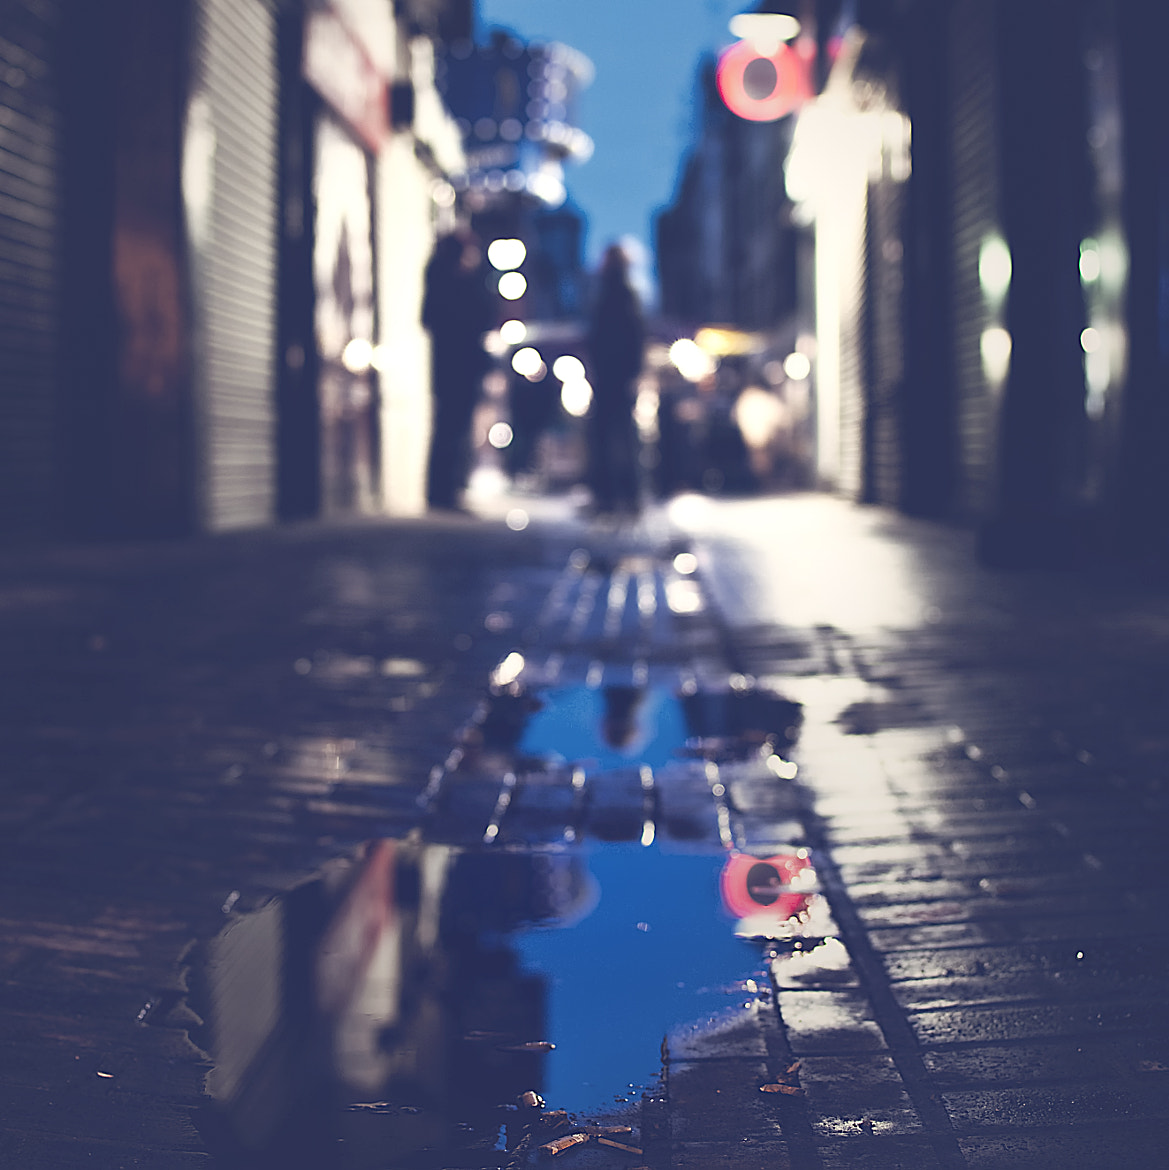 Photograph lost in a blue puddle by Gerard 74 on 500px